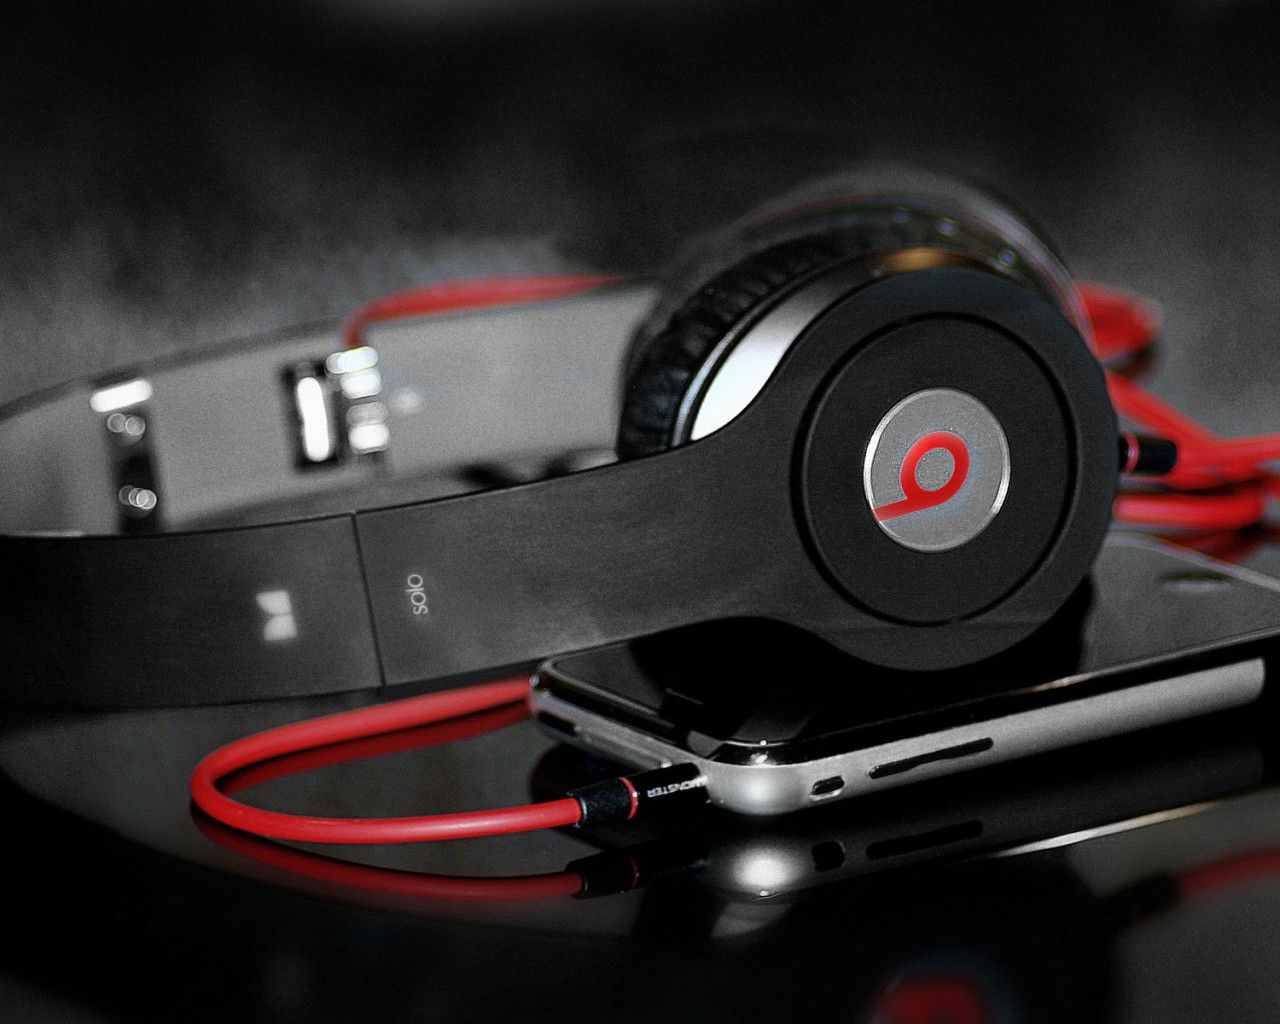 Beats Solo Headphones Red Line Photography Product Free Hd Wallpapers Beats Headphones Music Headphones Headphones